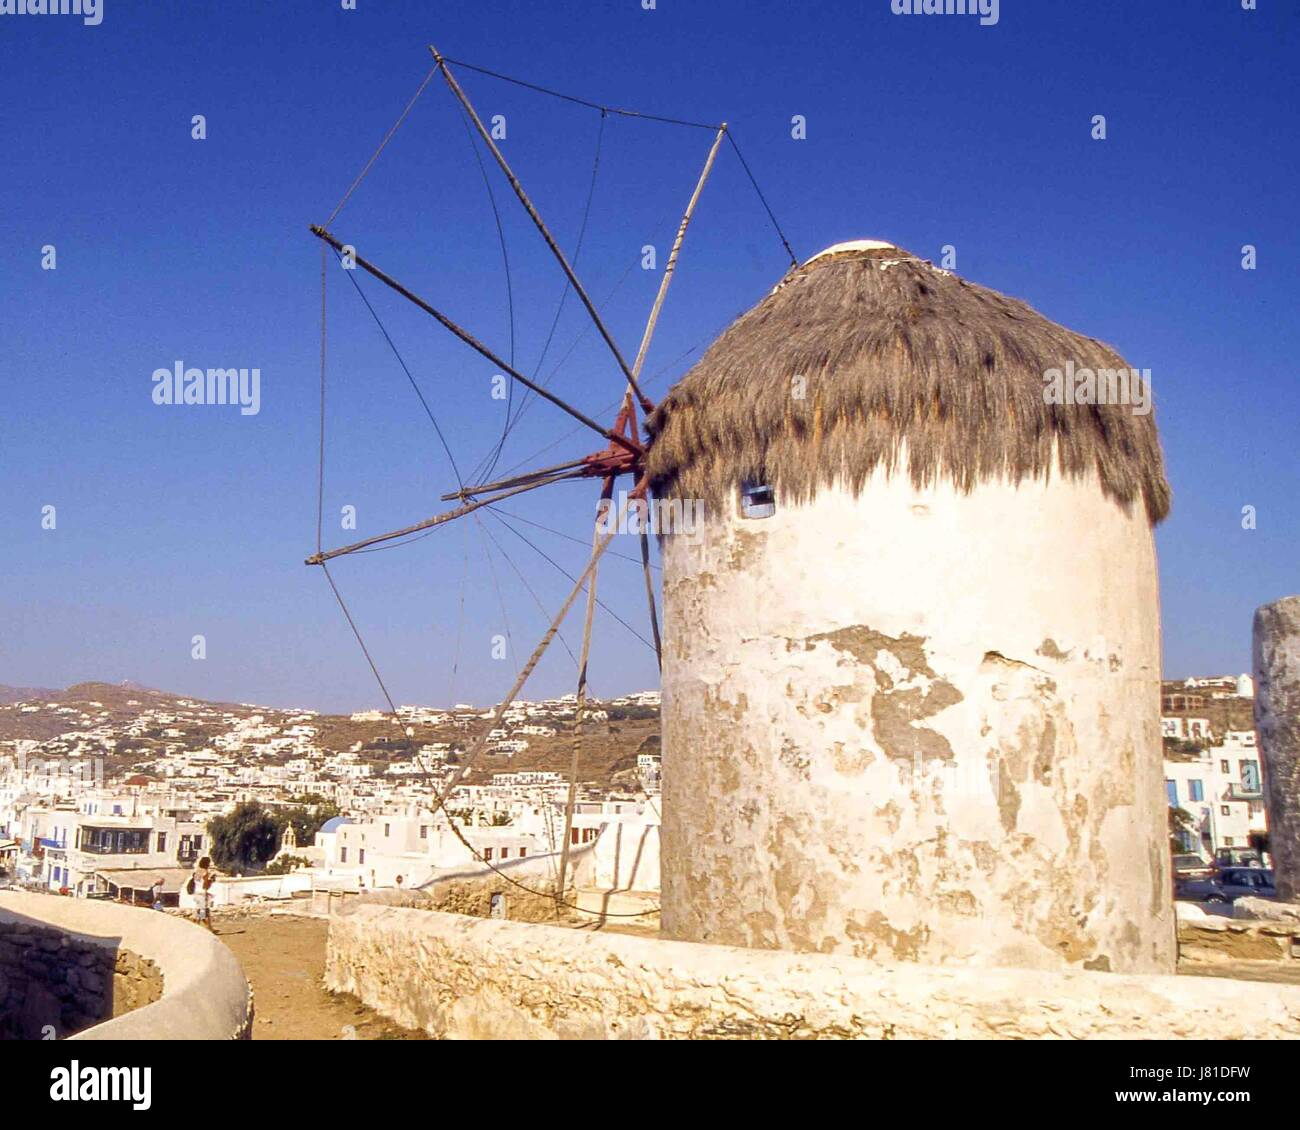 Chora, Mykonos, Greece. 3rd Oct, 2004. The famous iconic windmills (Kato Mili) in Chora, Mykonos, on a hill overlooking Stock Photo